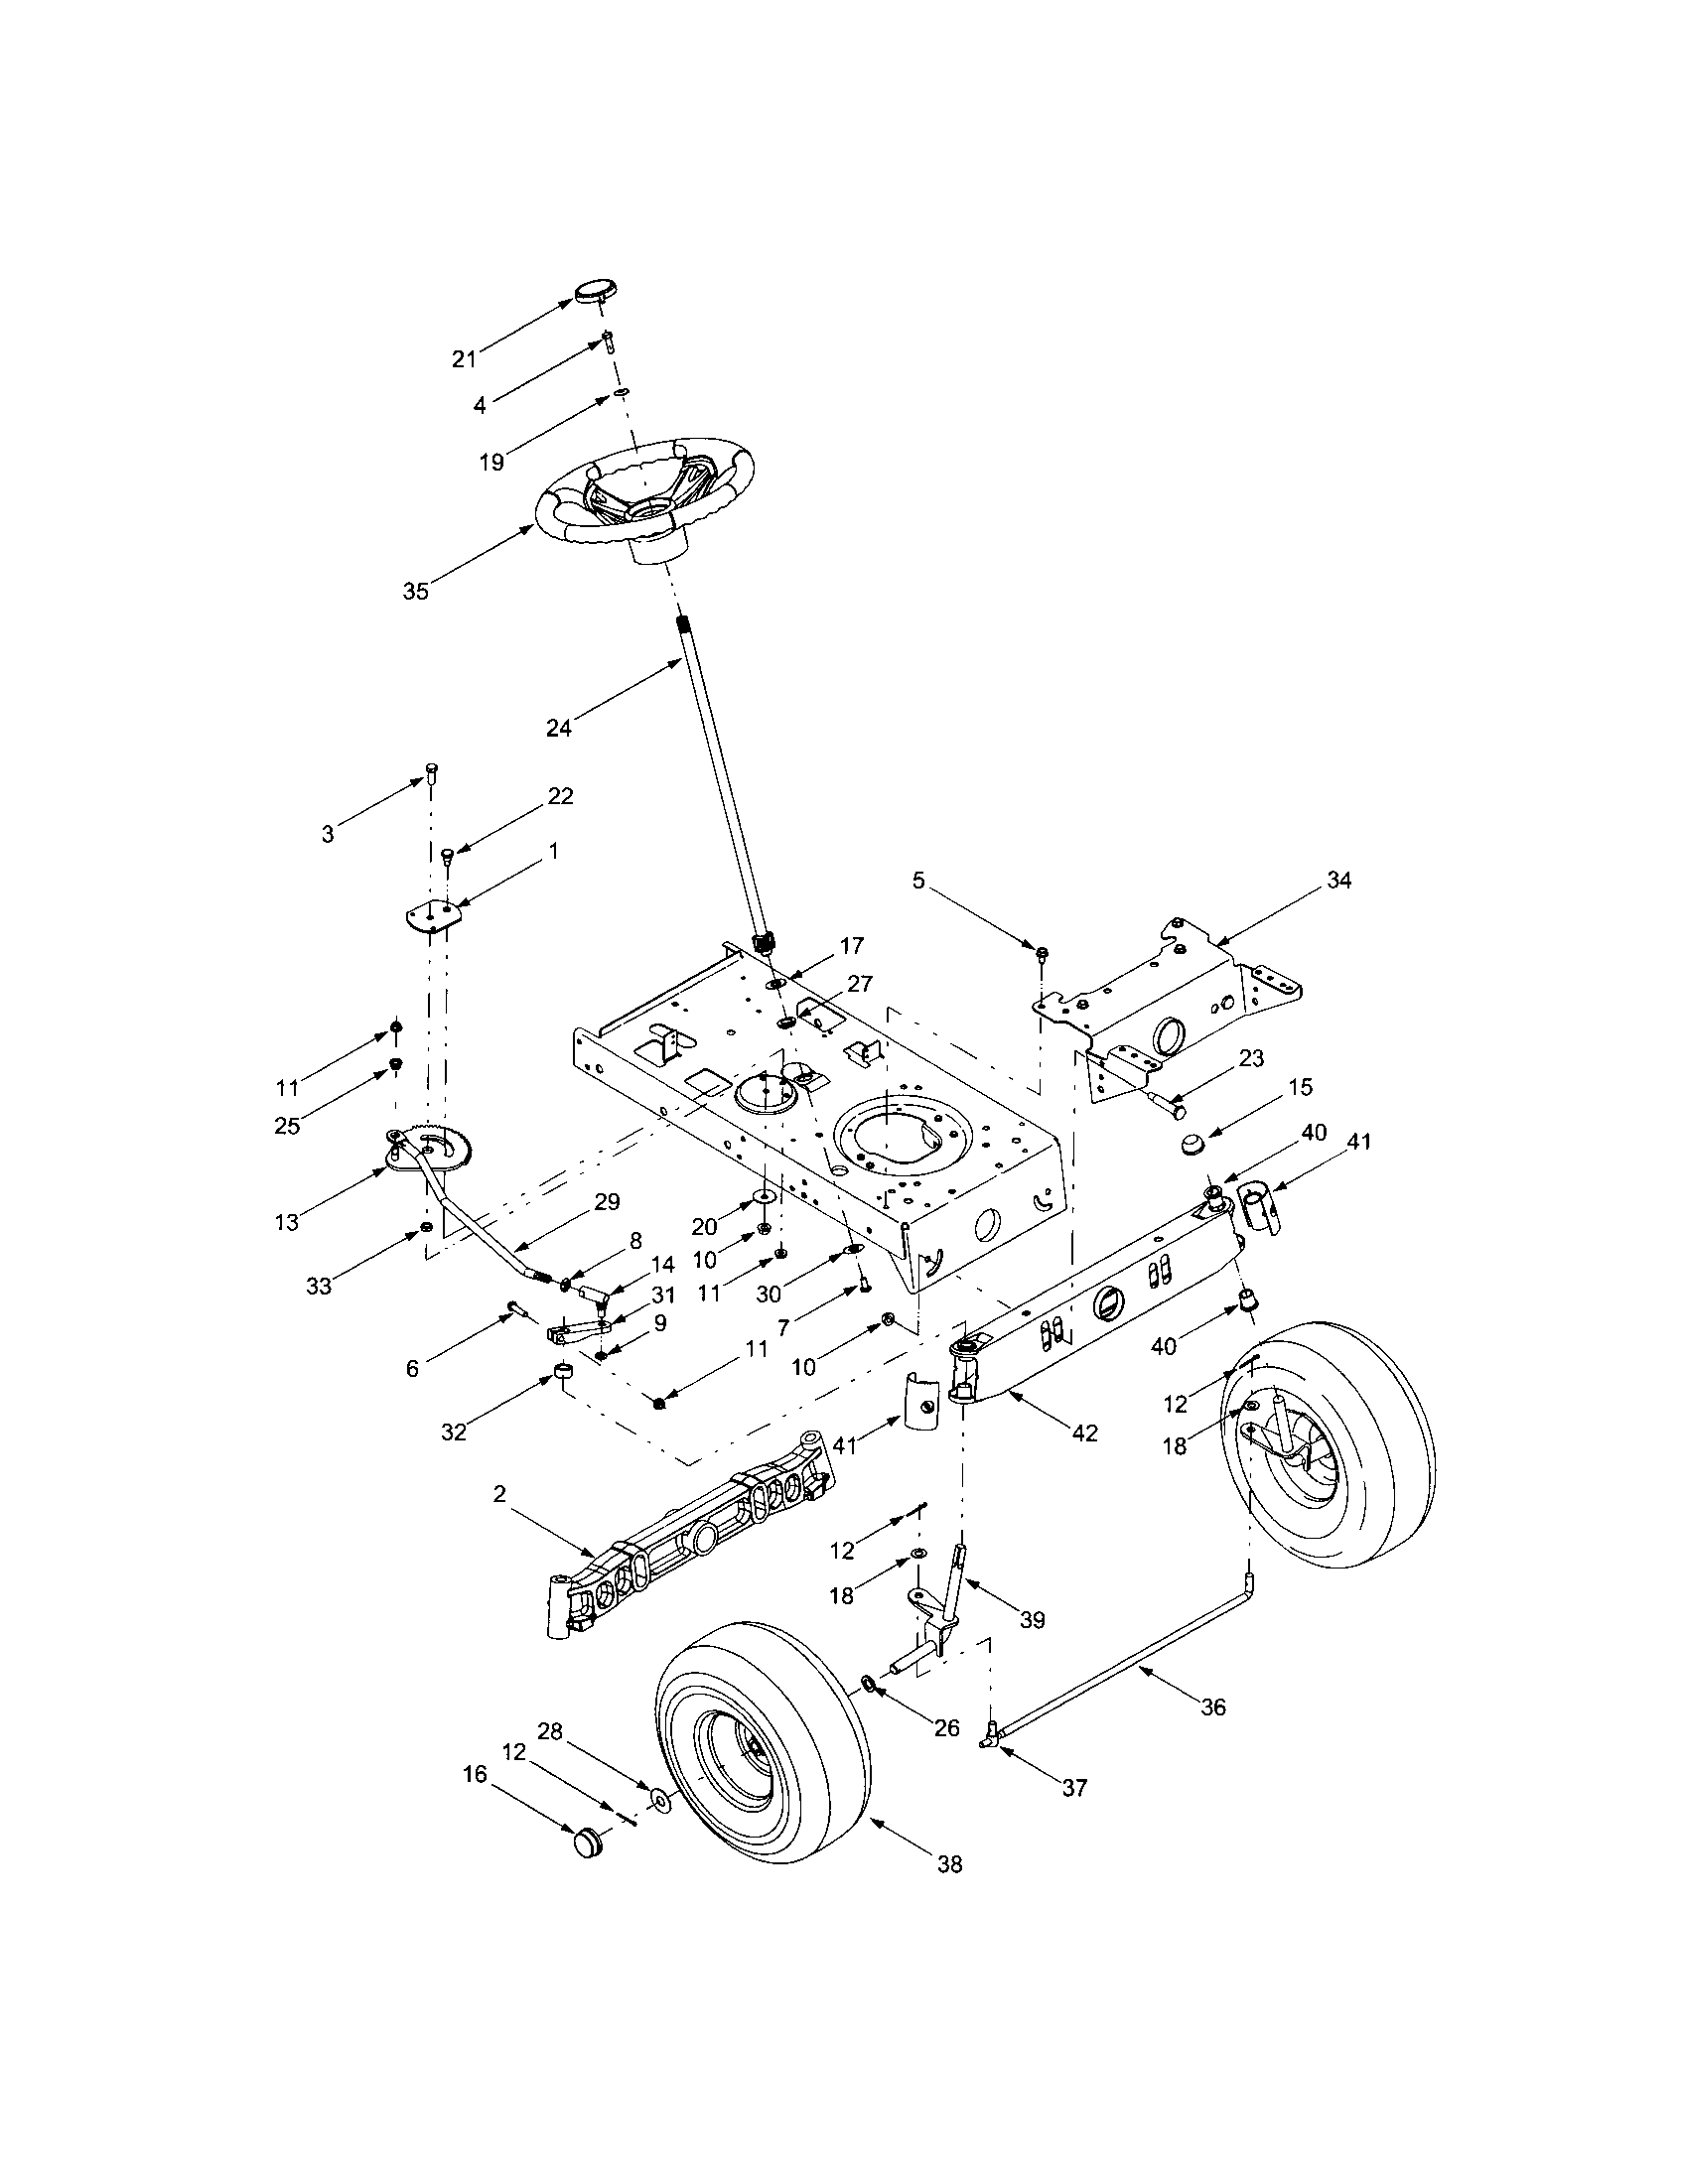 2004 Chevrolet Malibu Steering Column Parts Diagram